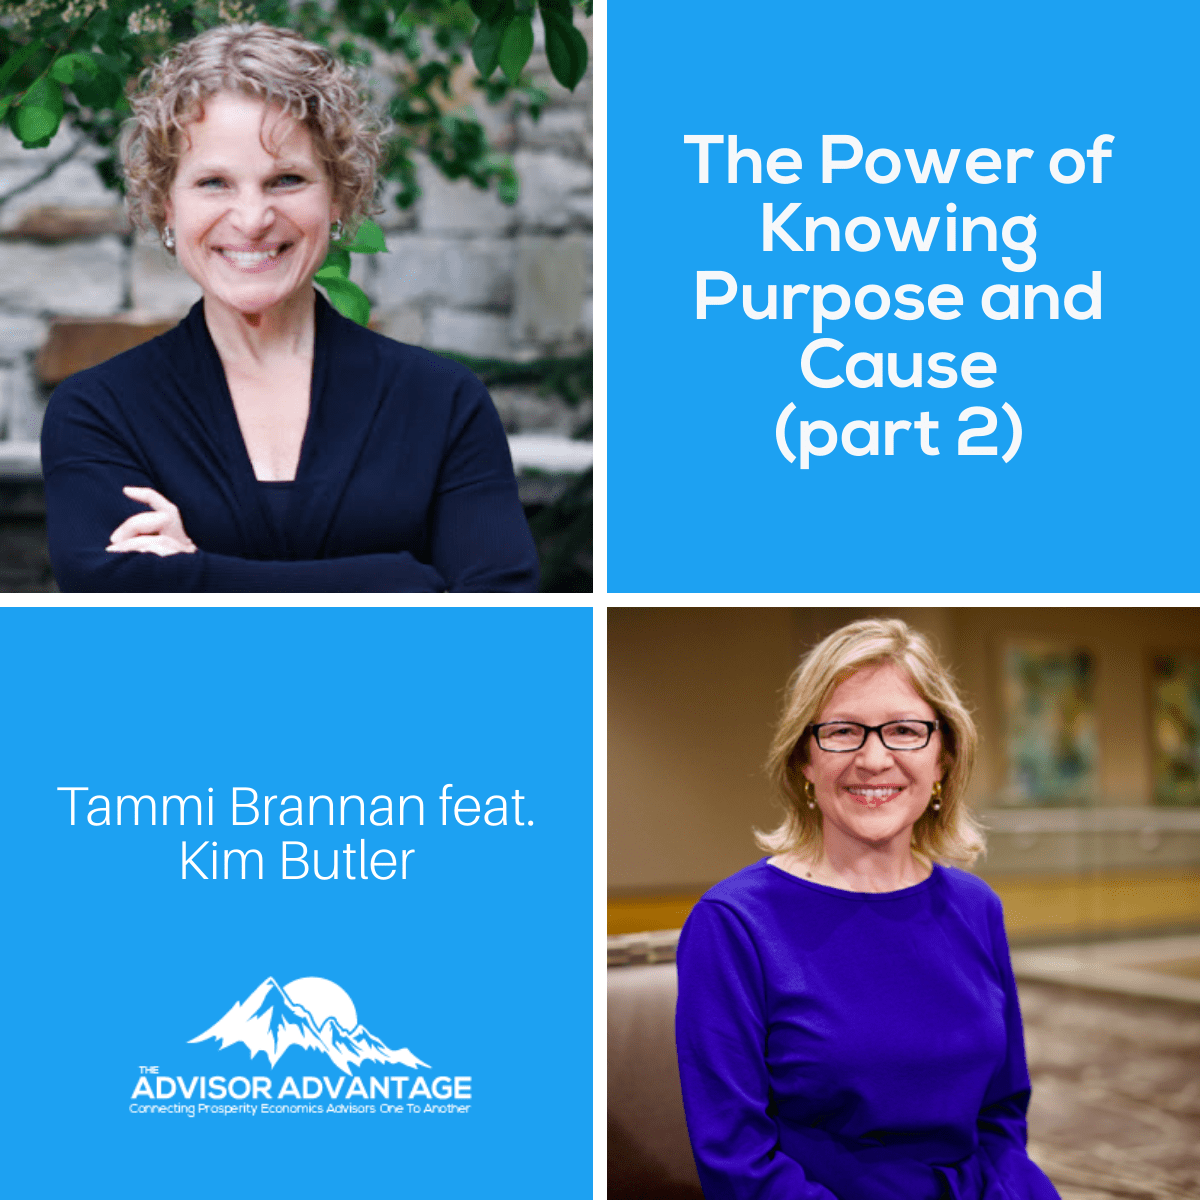 The Power of Knowing Purpose and Cause with Kim Butler (part 2) – Episode 220